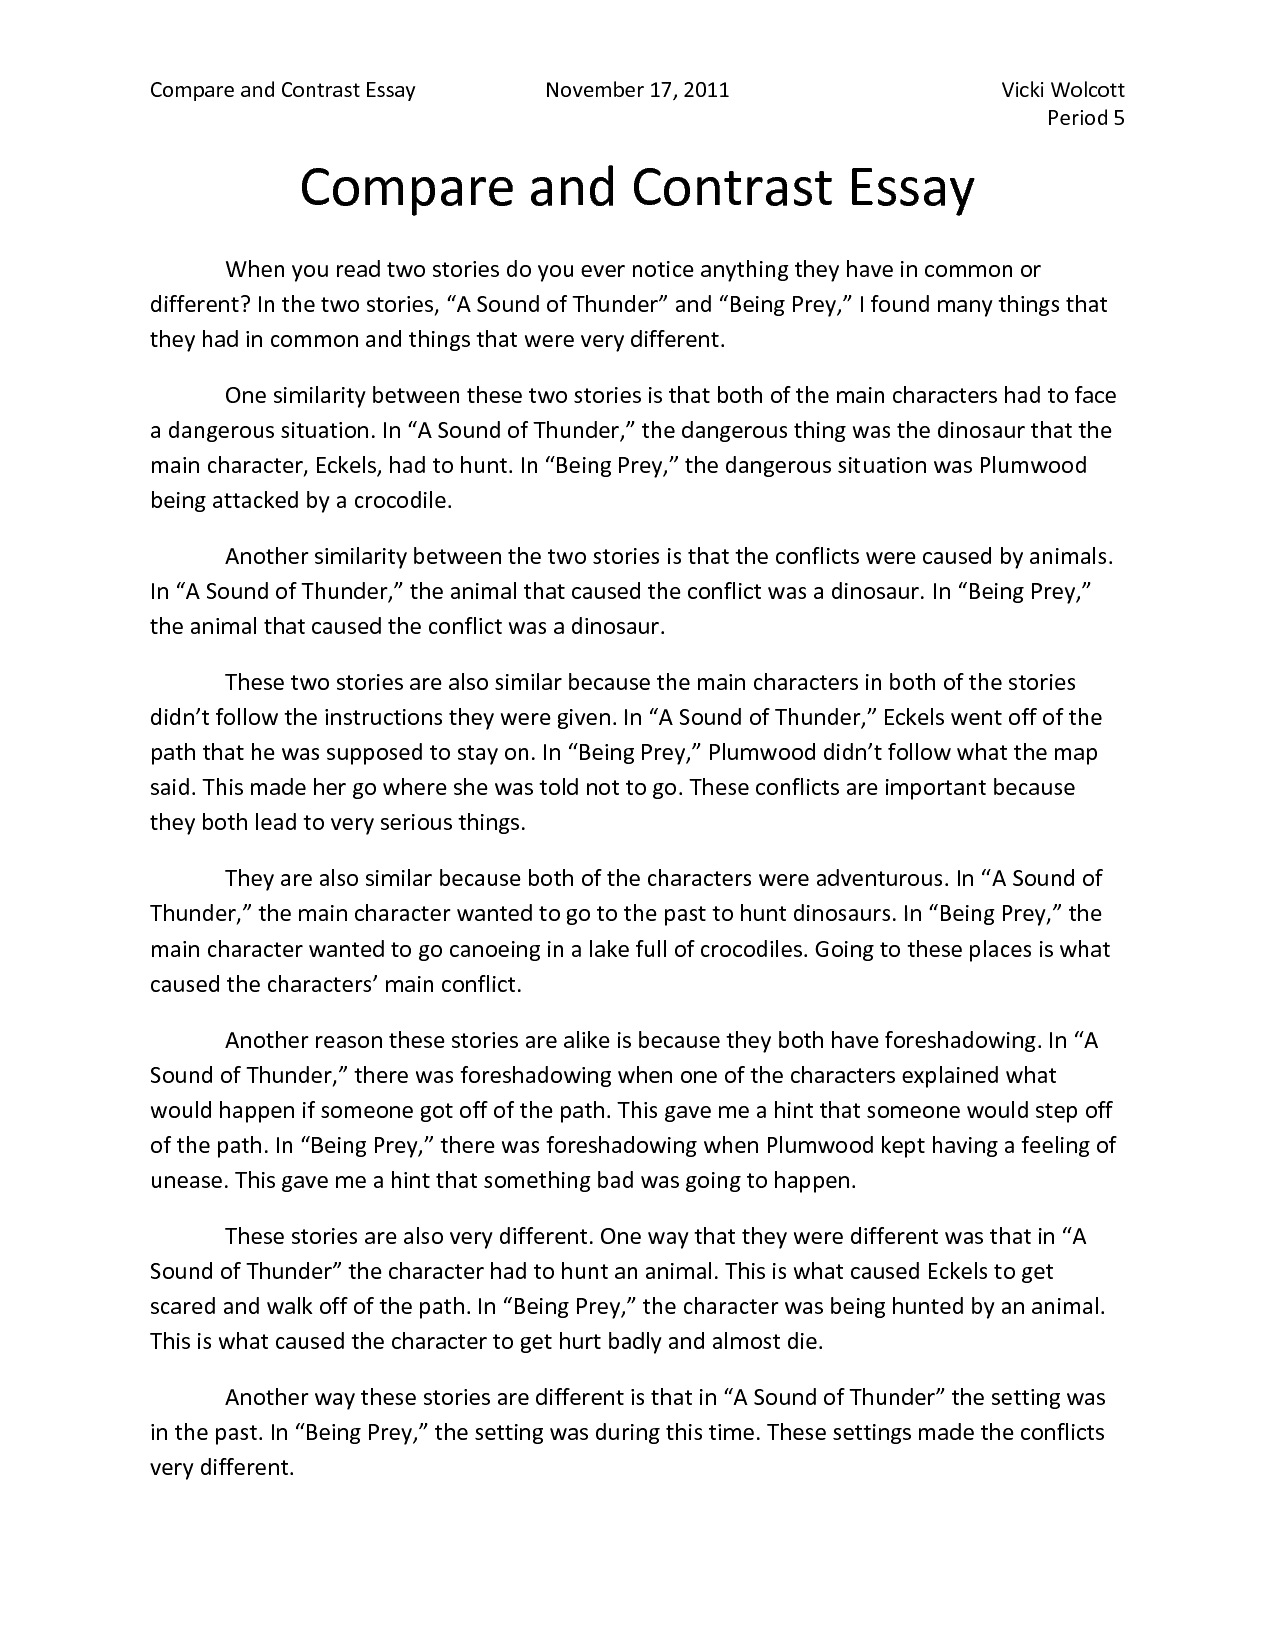 compare and contrast the presentation essay Compare and contrast the presentation of themes of comradeship and and teamwork in accrington pals and journeys end in light of the opinion that war.